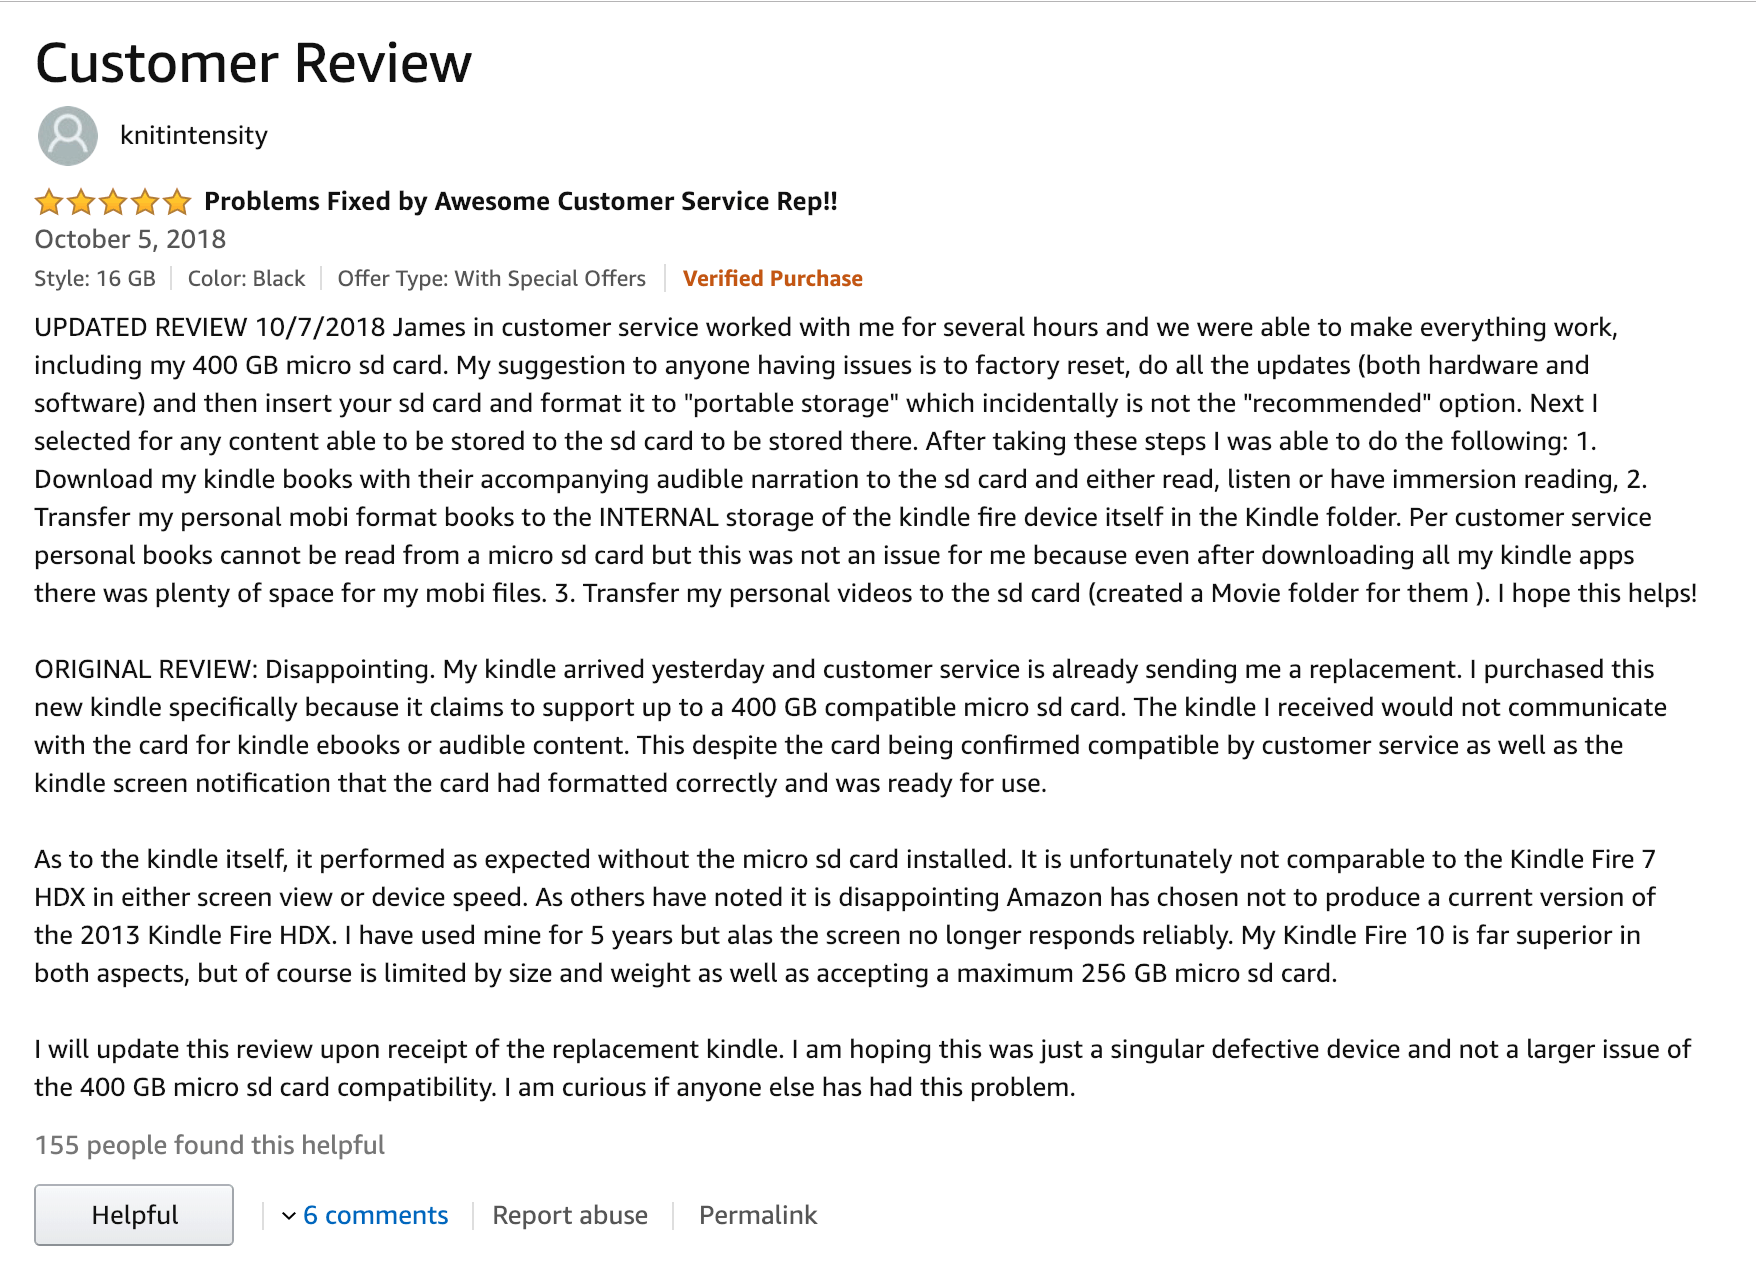 The Secret to Turning 1-Star Reviews into Marketing Wins